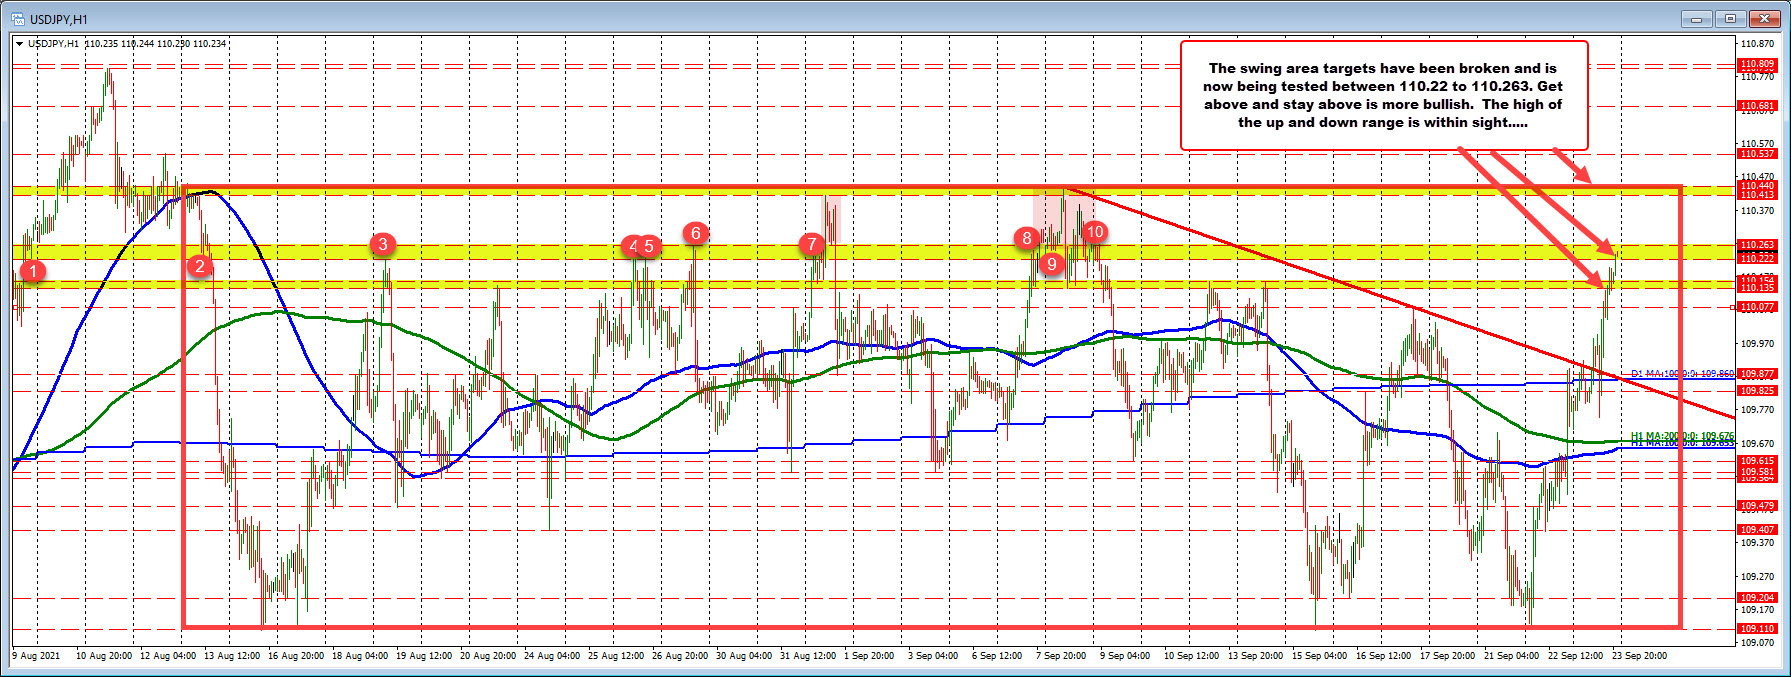 USDJPY moves into swing area target area. A break and the highs since August 13 will be targeted